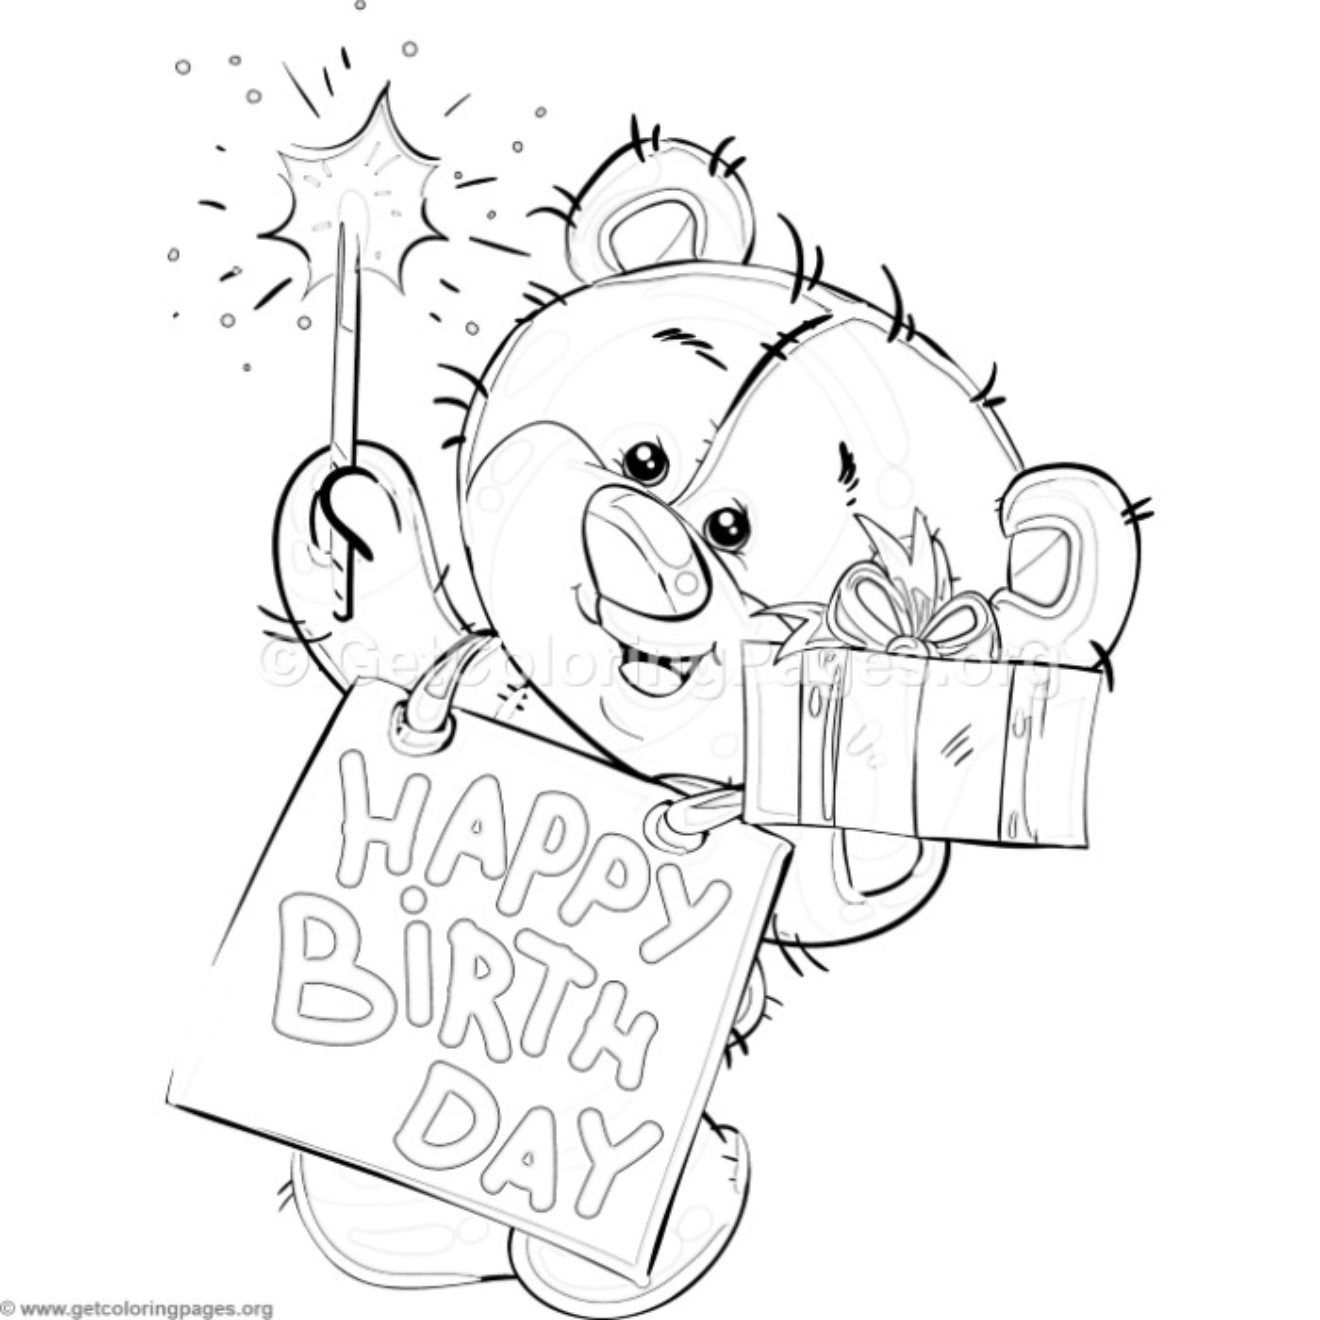 Happy Birthday Teddy Bear Coloring Pages Getcoloringpages Org